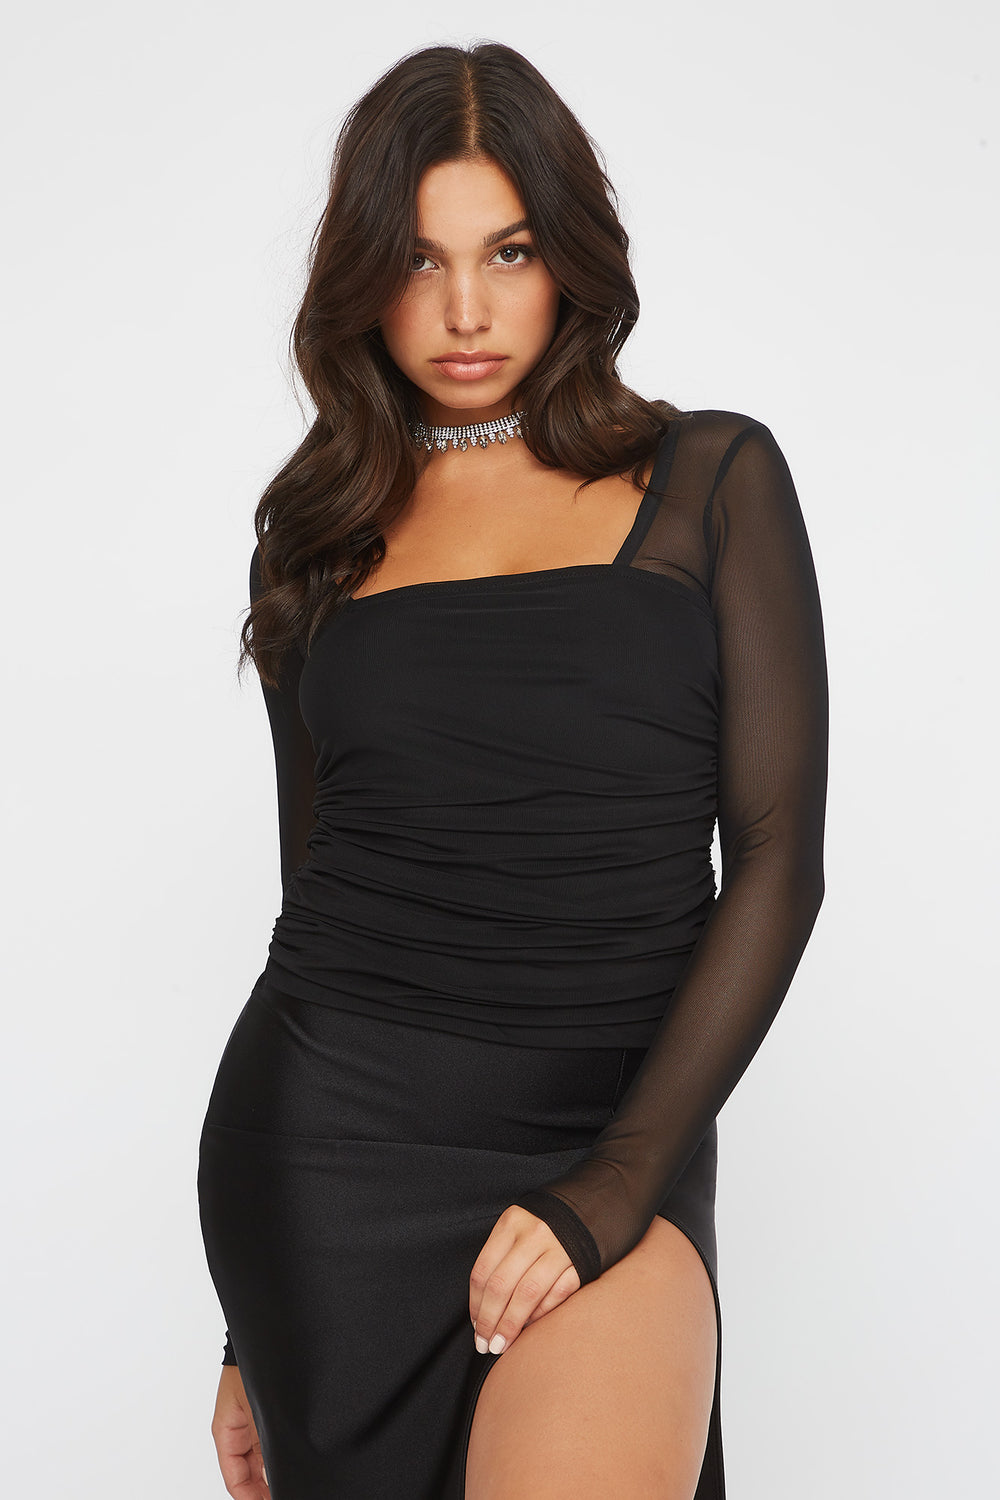 Ruched Mesh Square Neck Long Sleeve Black